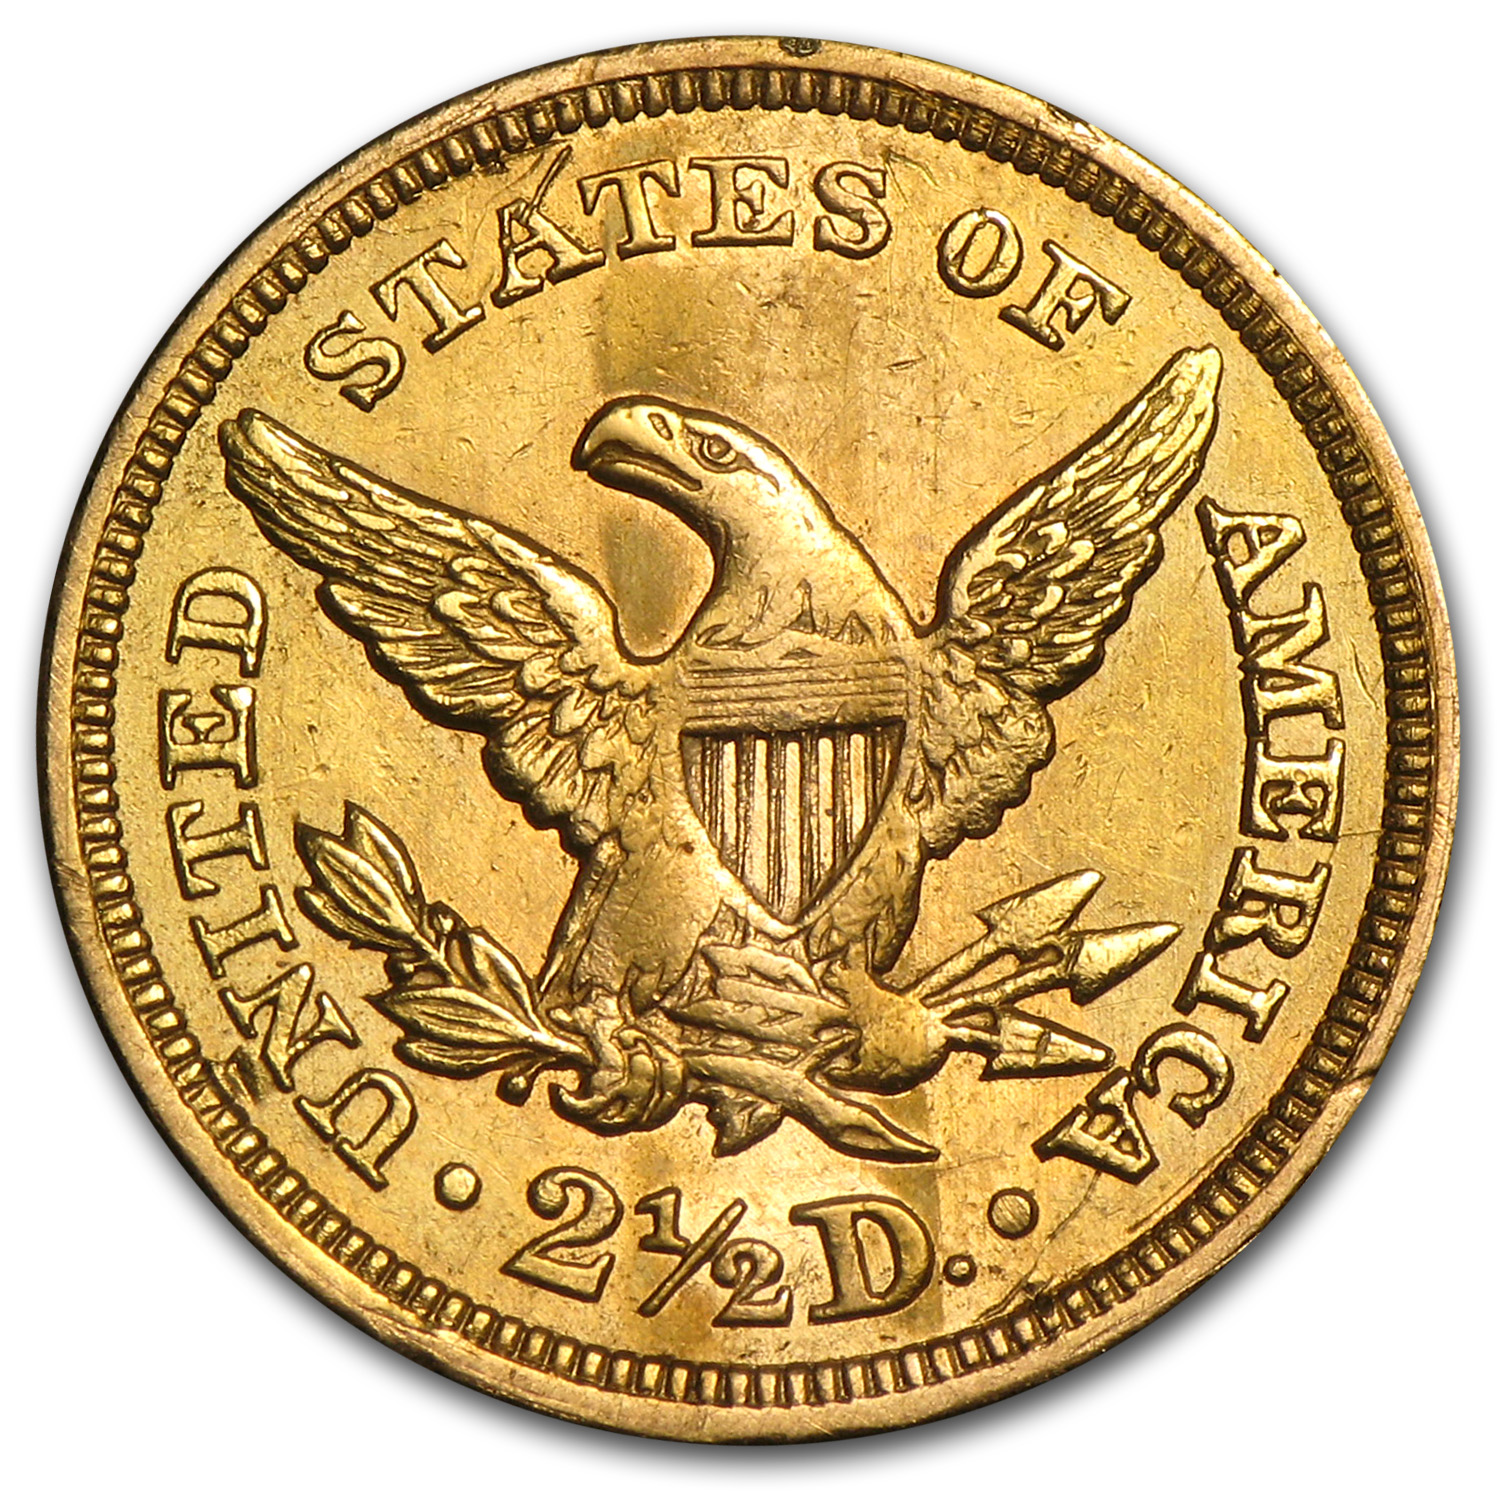 1861 $2.50 Liberty Gold Quarter Eagle - Type I Rev - AU Details